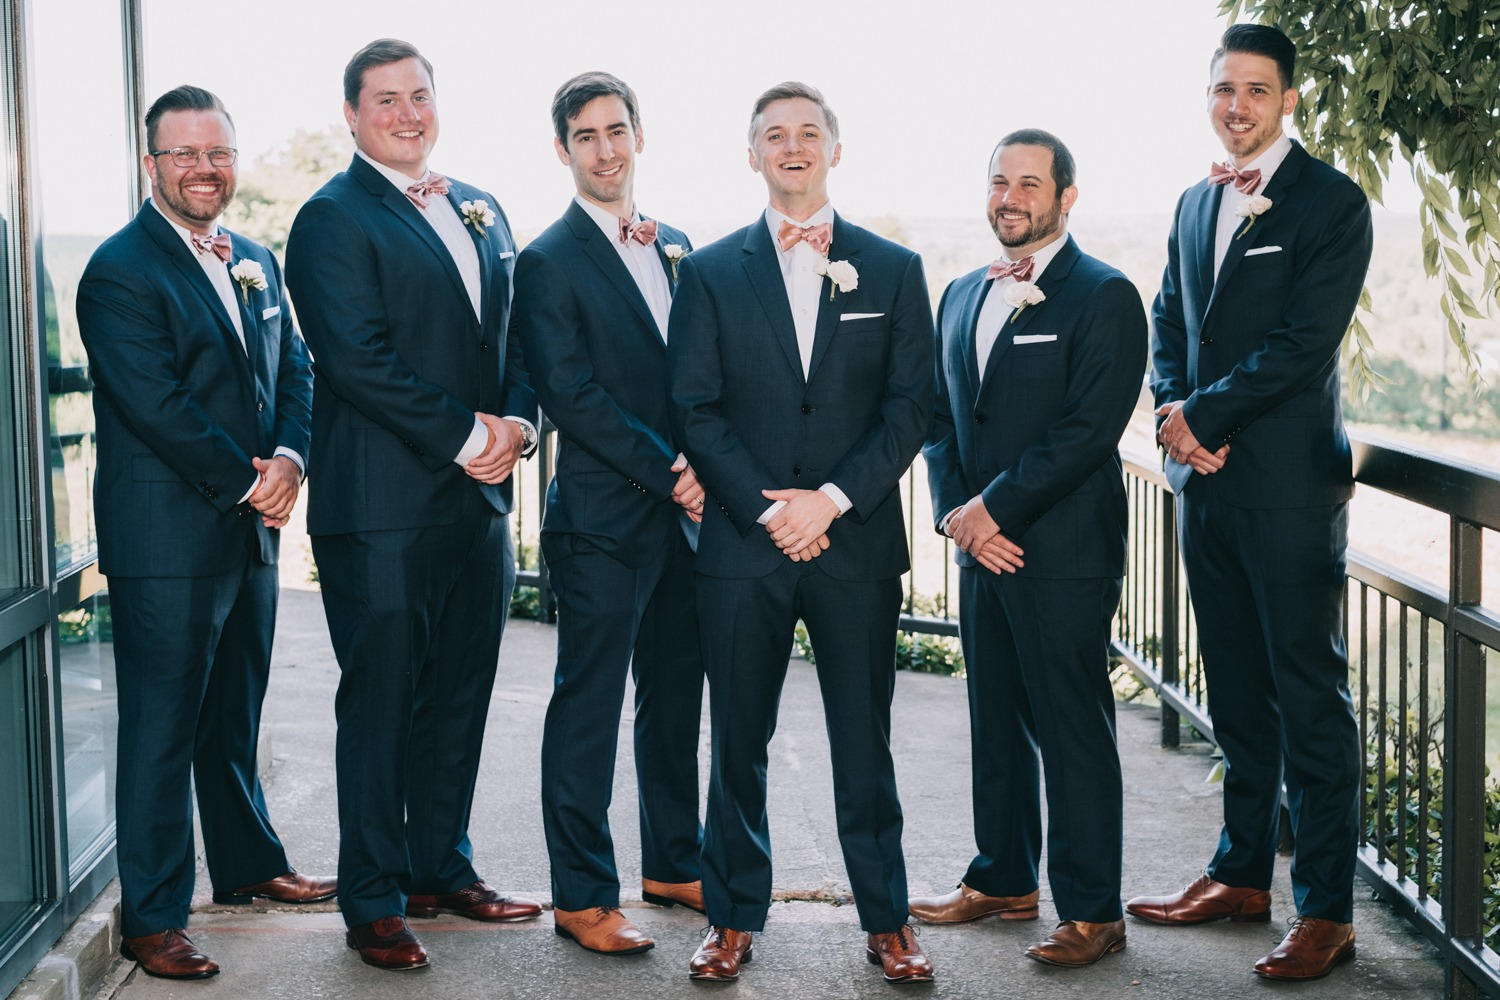 groom and his men in matching navy suits